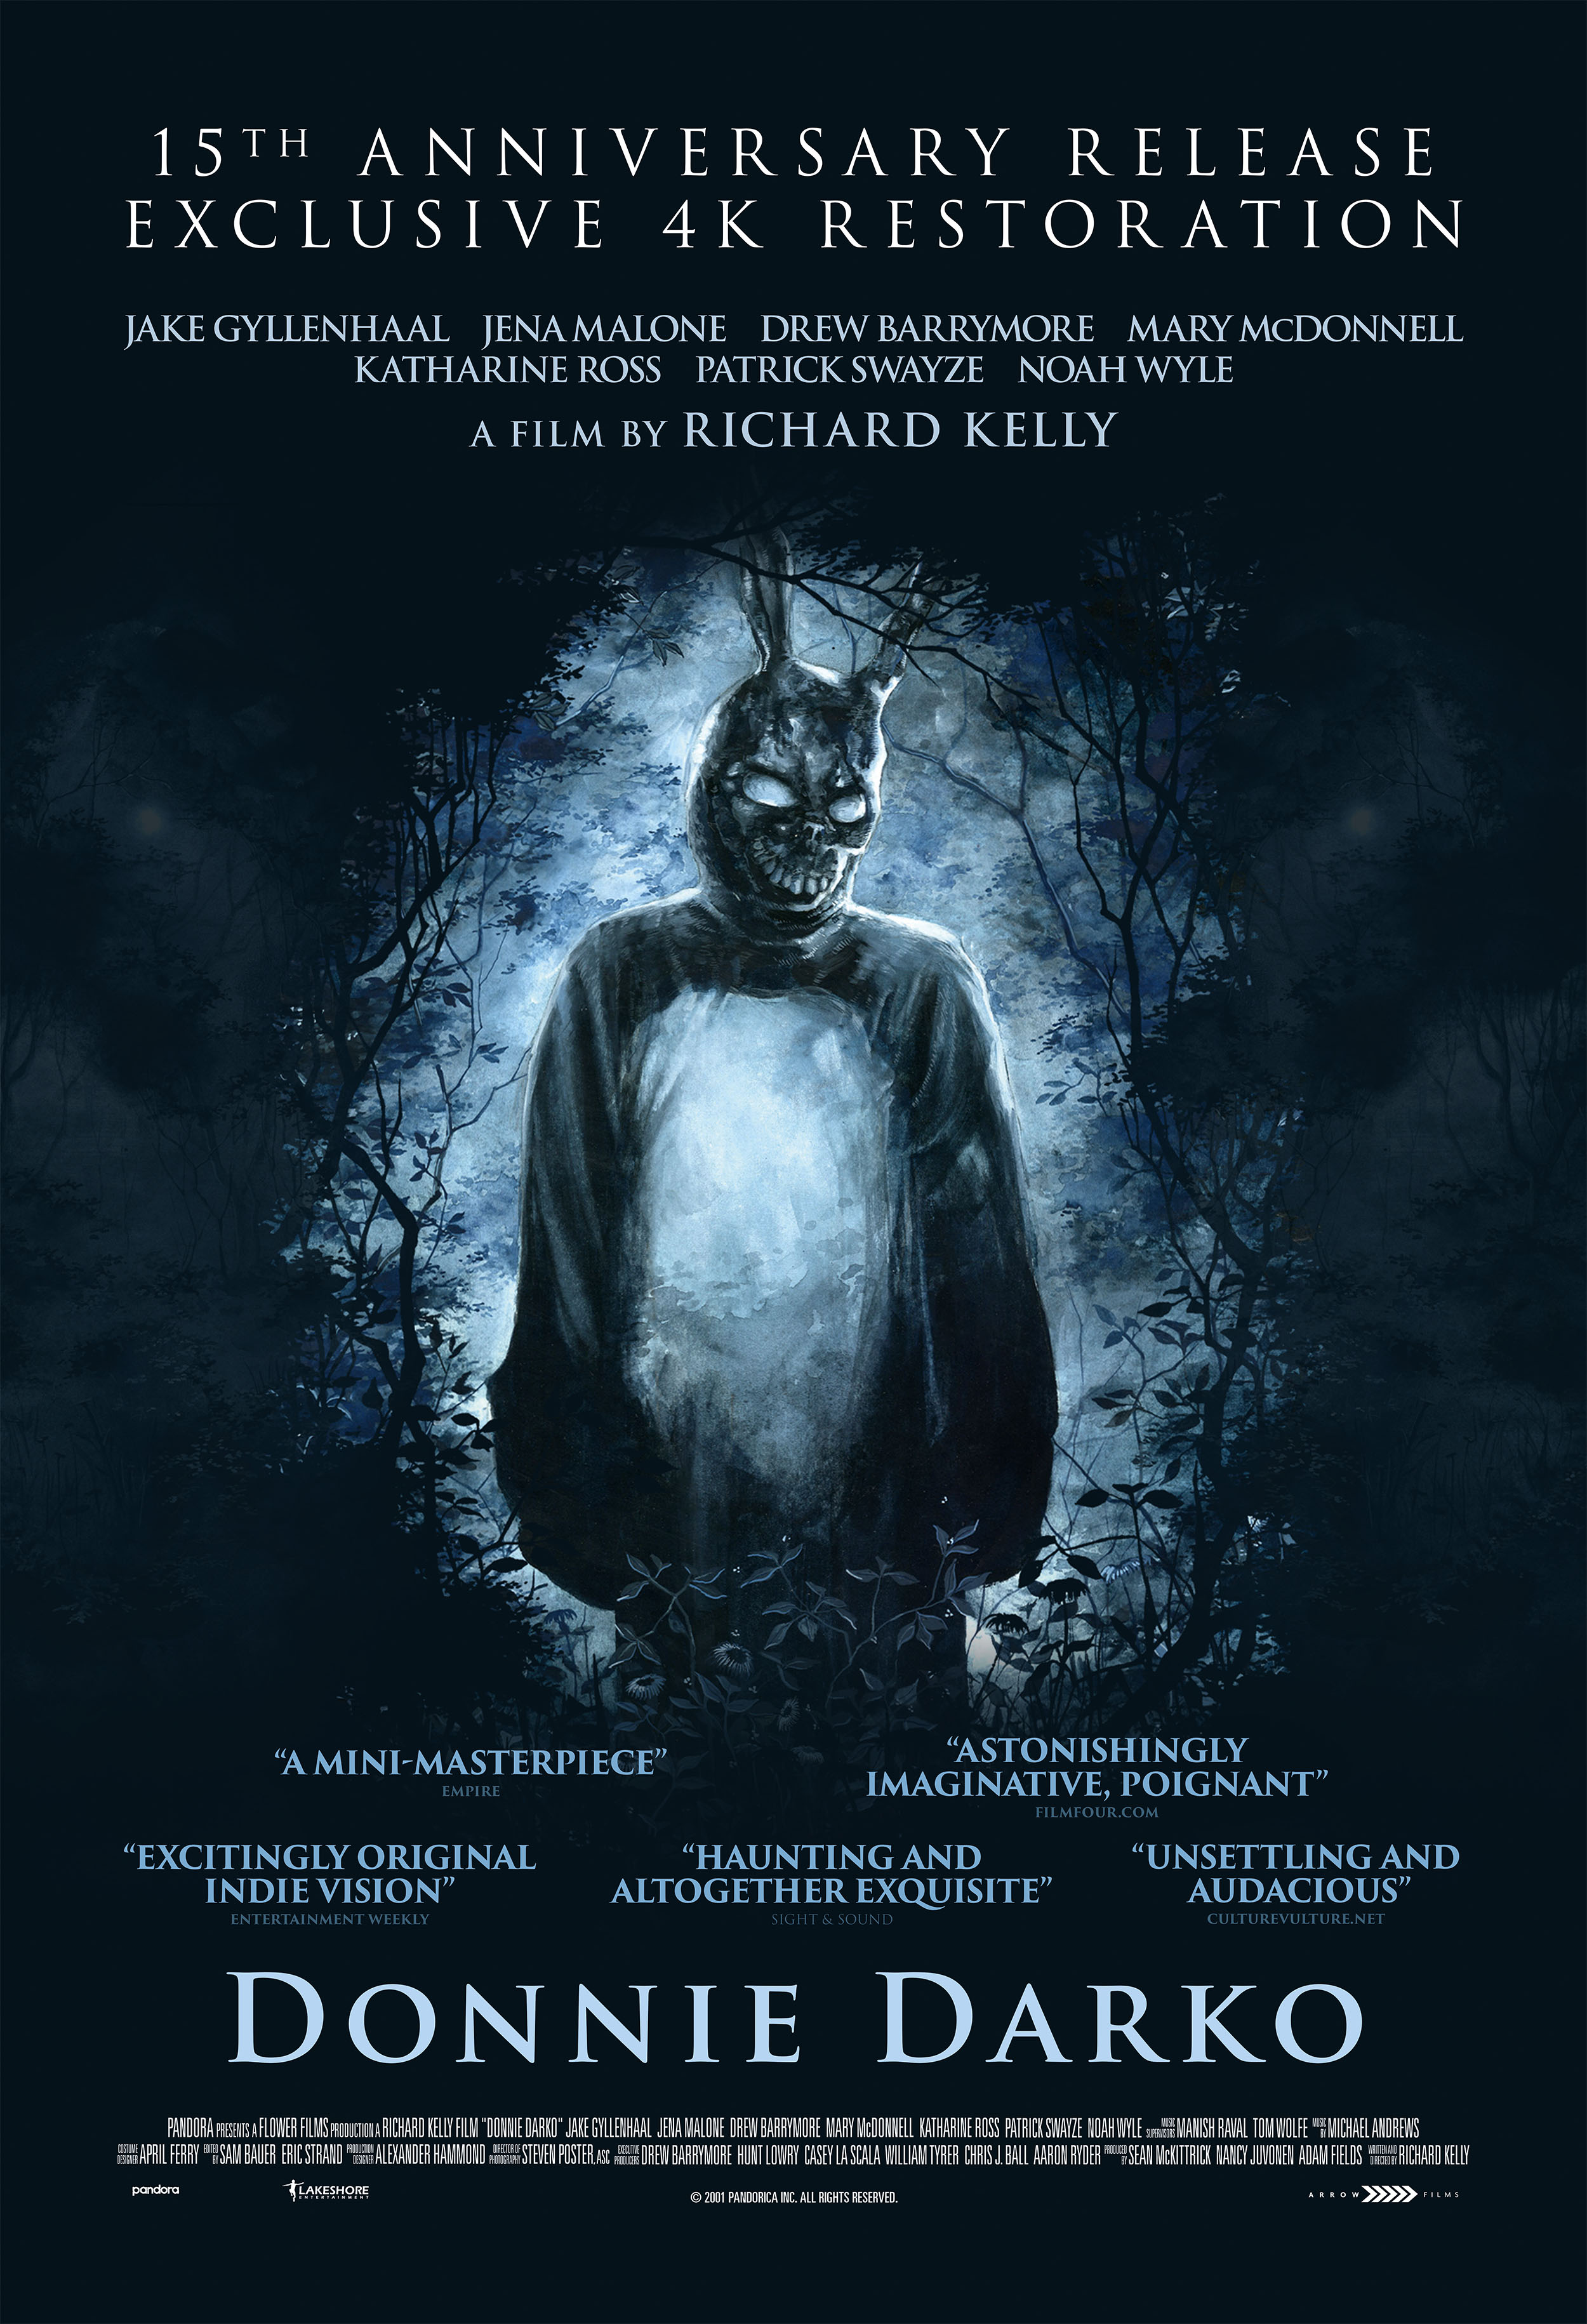 [FFF] DONNIE DARKO